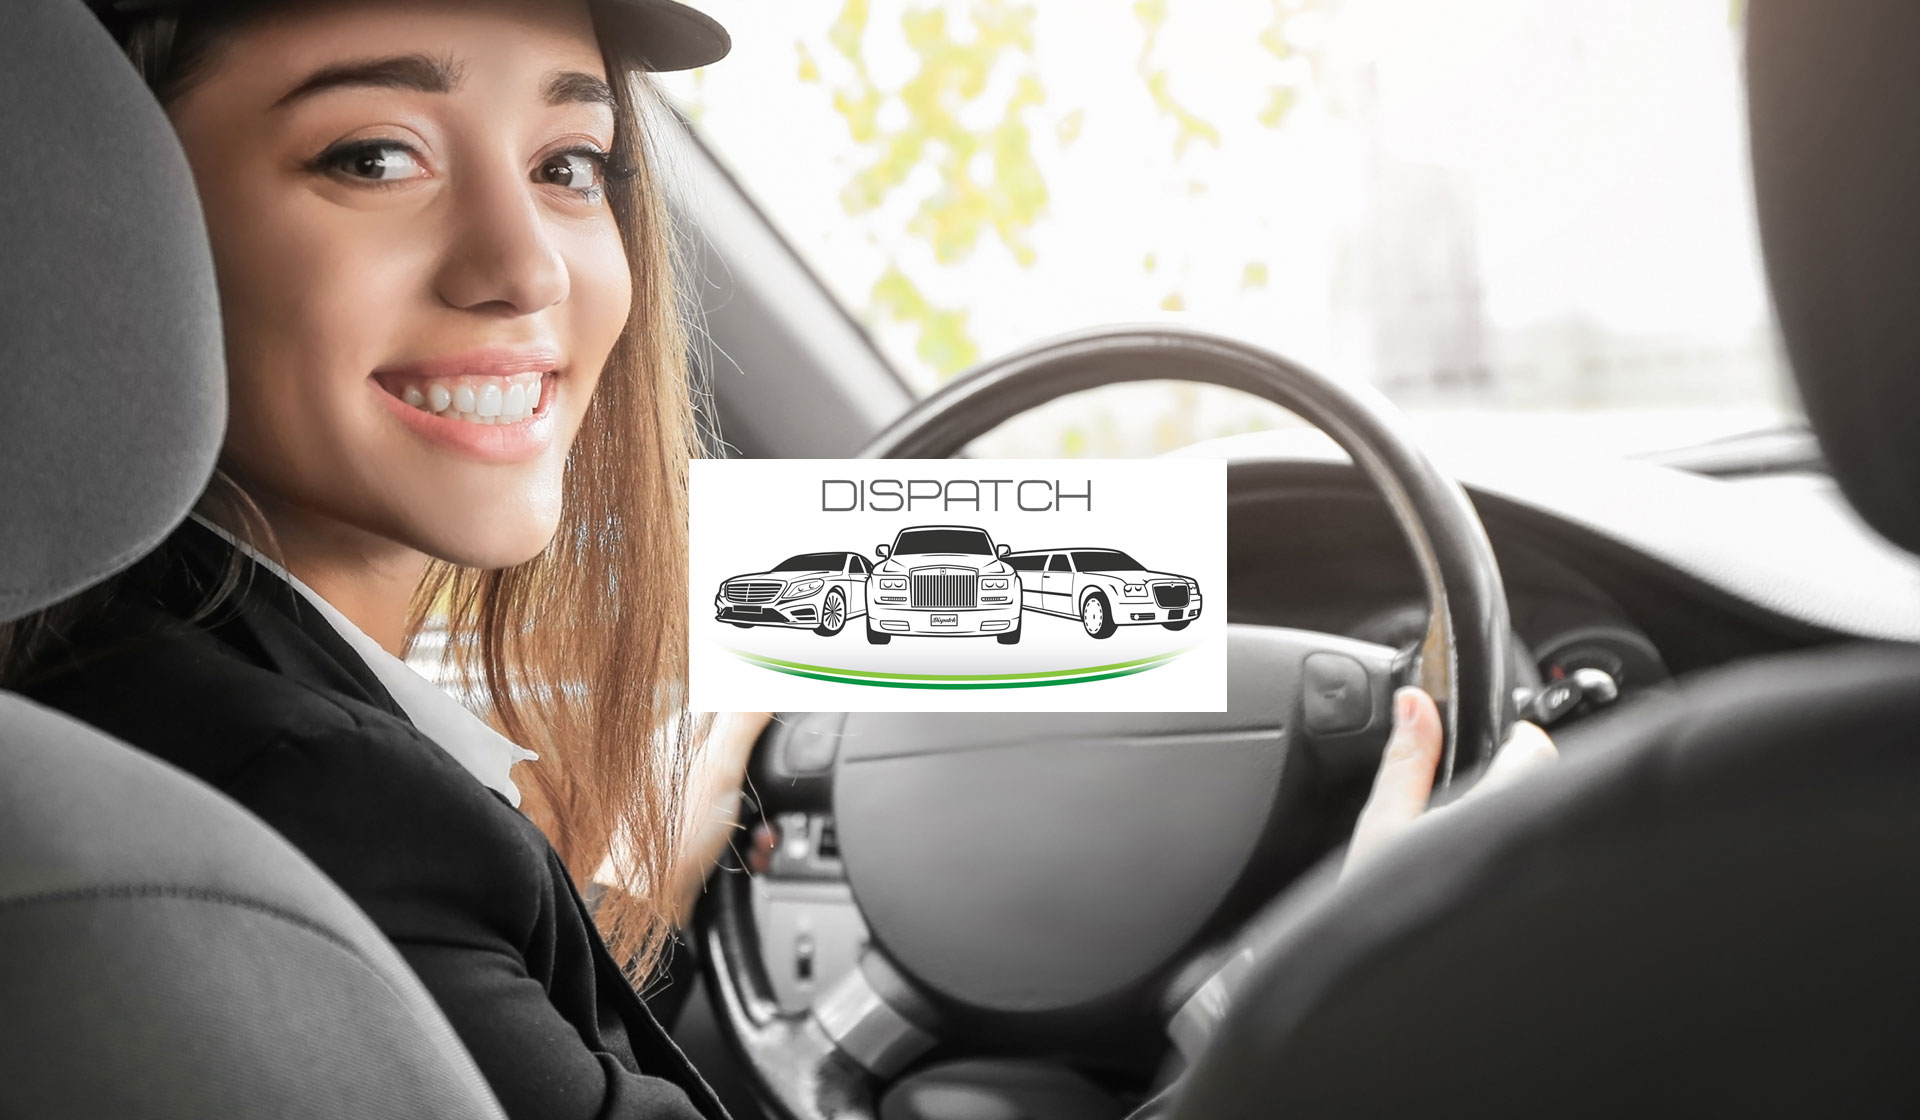 Dispatch's Chauffeur Booking Software can enhance the quality of your service